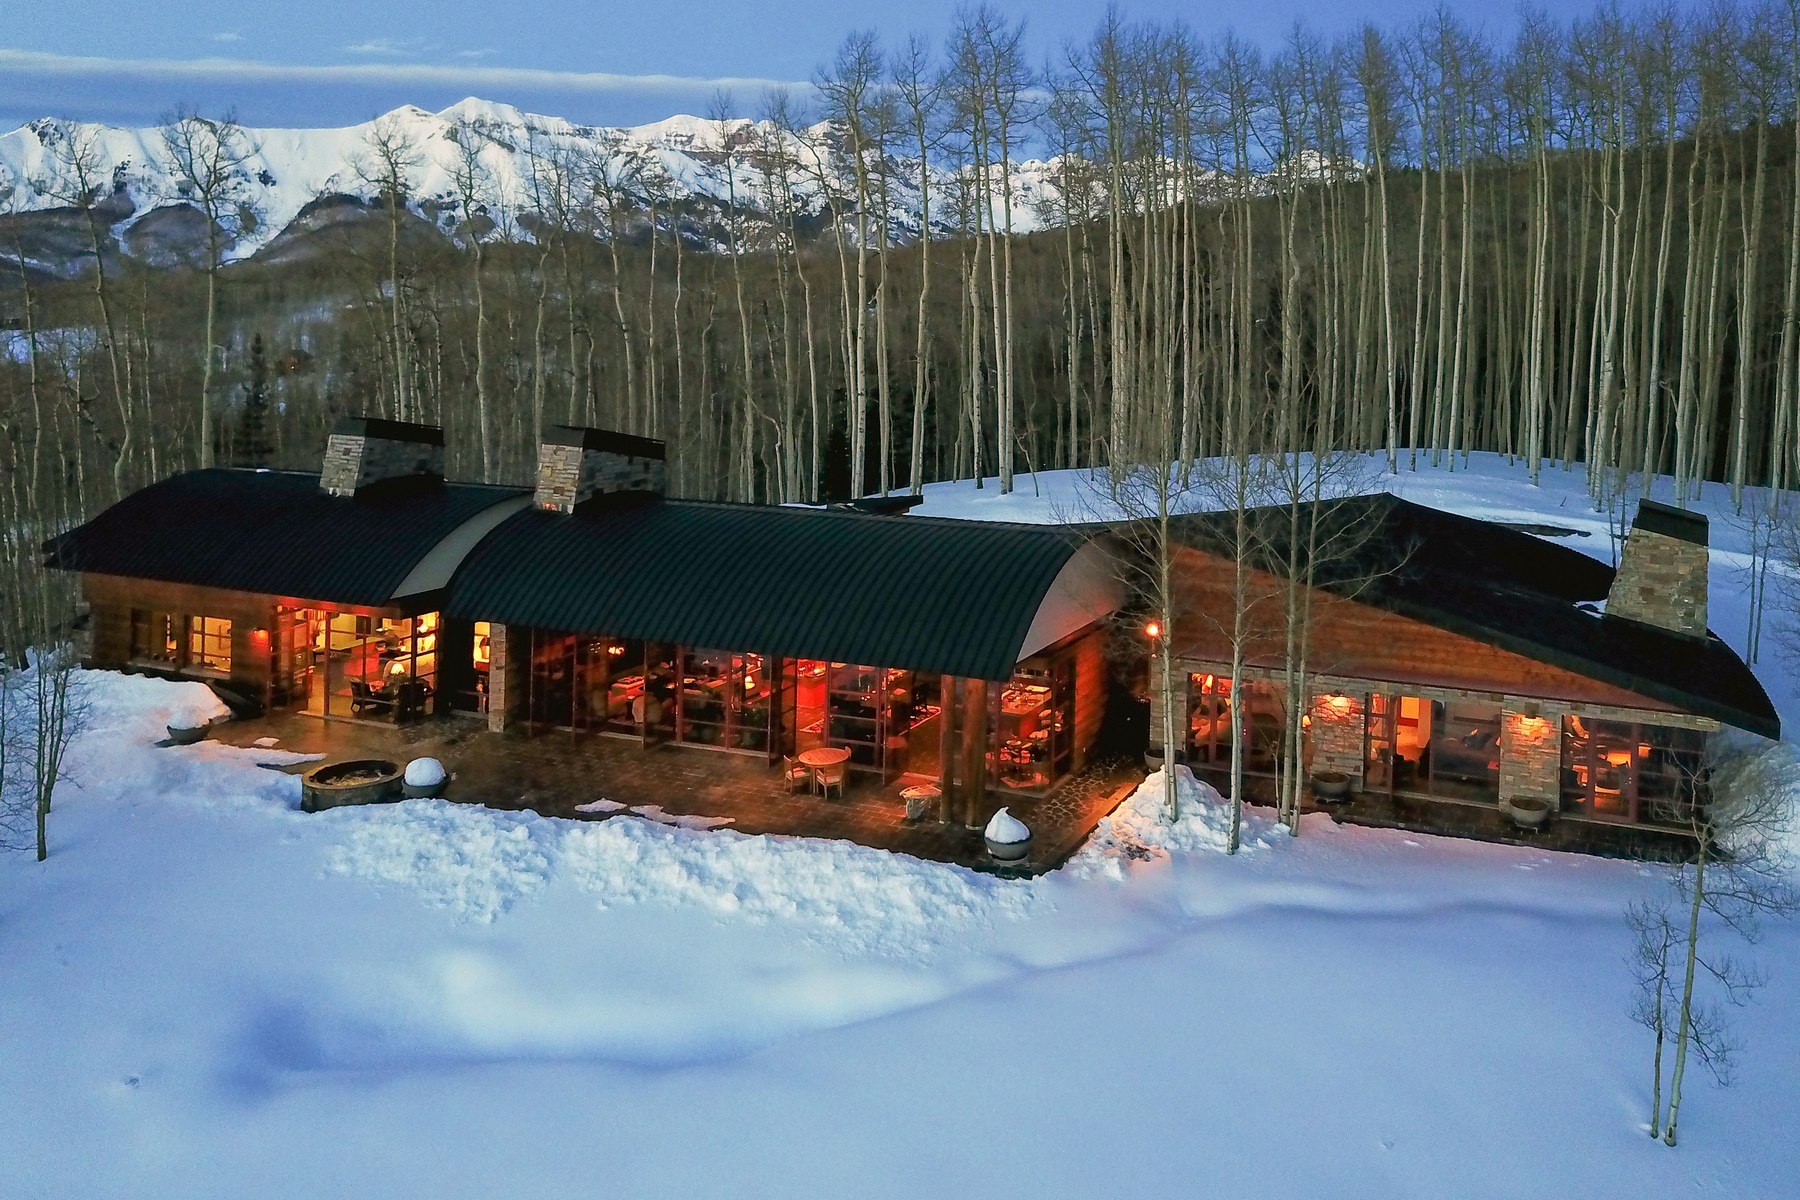 Single Family Home for Active at 500 Elk Run Drive 500 Elk Run Drive Telluride, Colorado 81435 United States